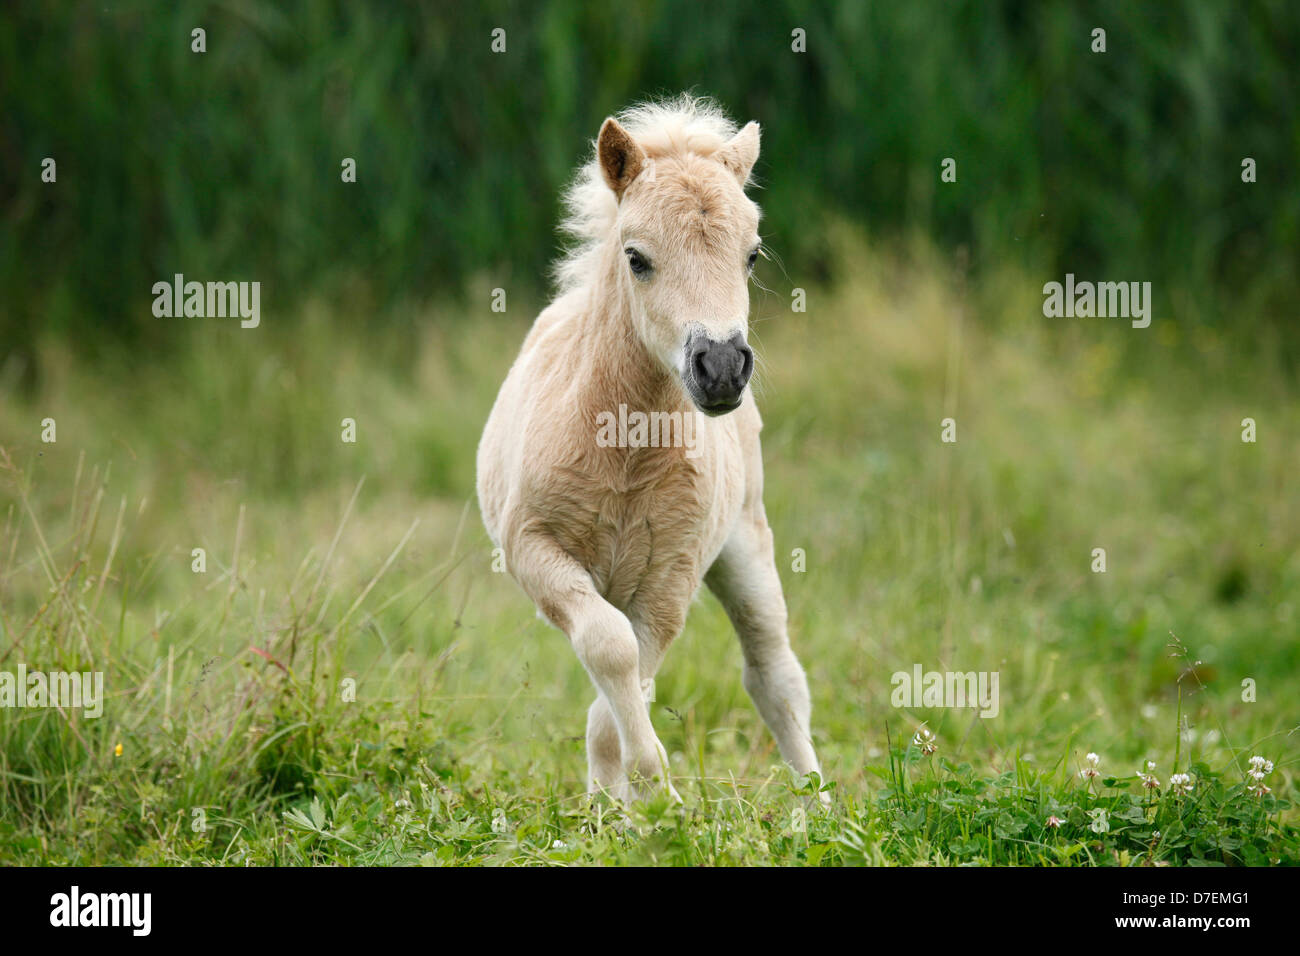 shetlandpony horse foal meadow stockfotos shetlandpony horse foal meadow bilder alamy. Black Bedroom Furniture Sets. Home Design Ideas